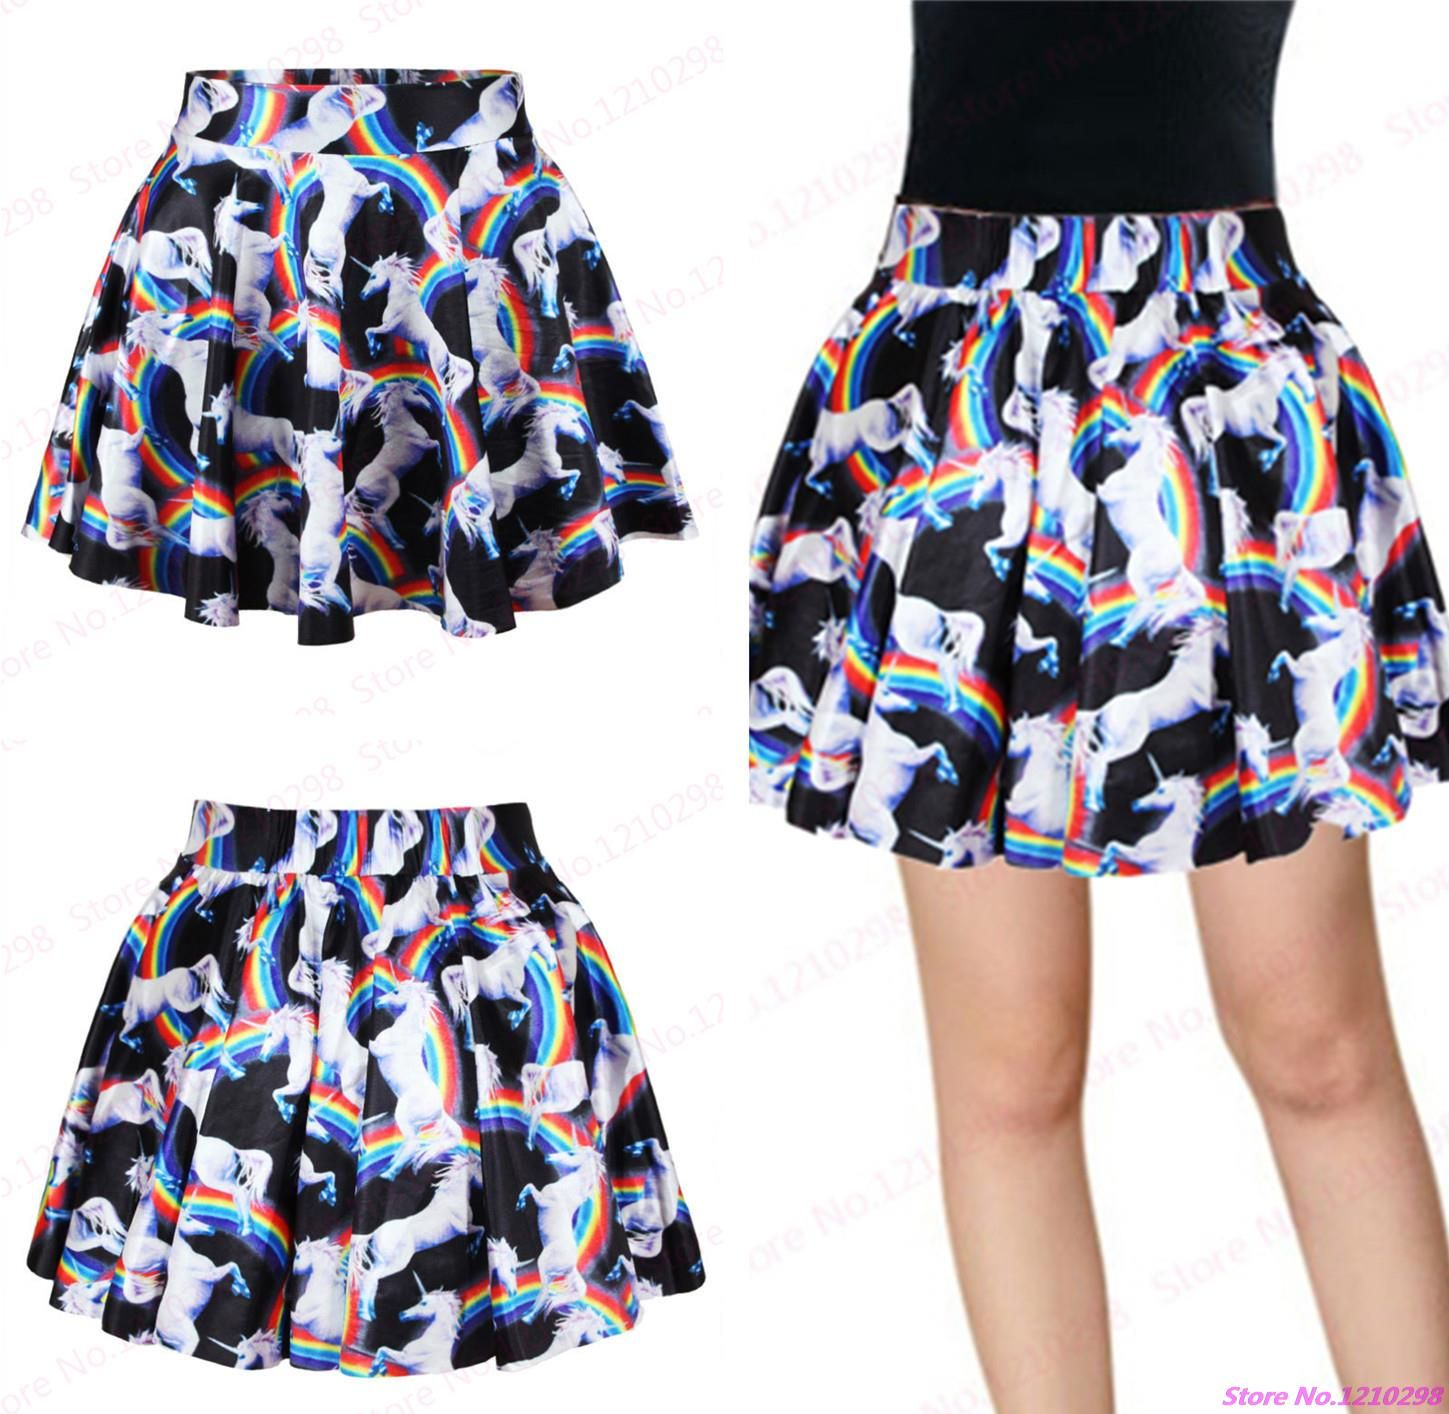 Find More Tennis Skirts Information about New Unicorn Tennis Skirts Women…